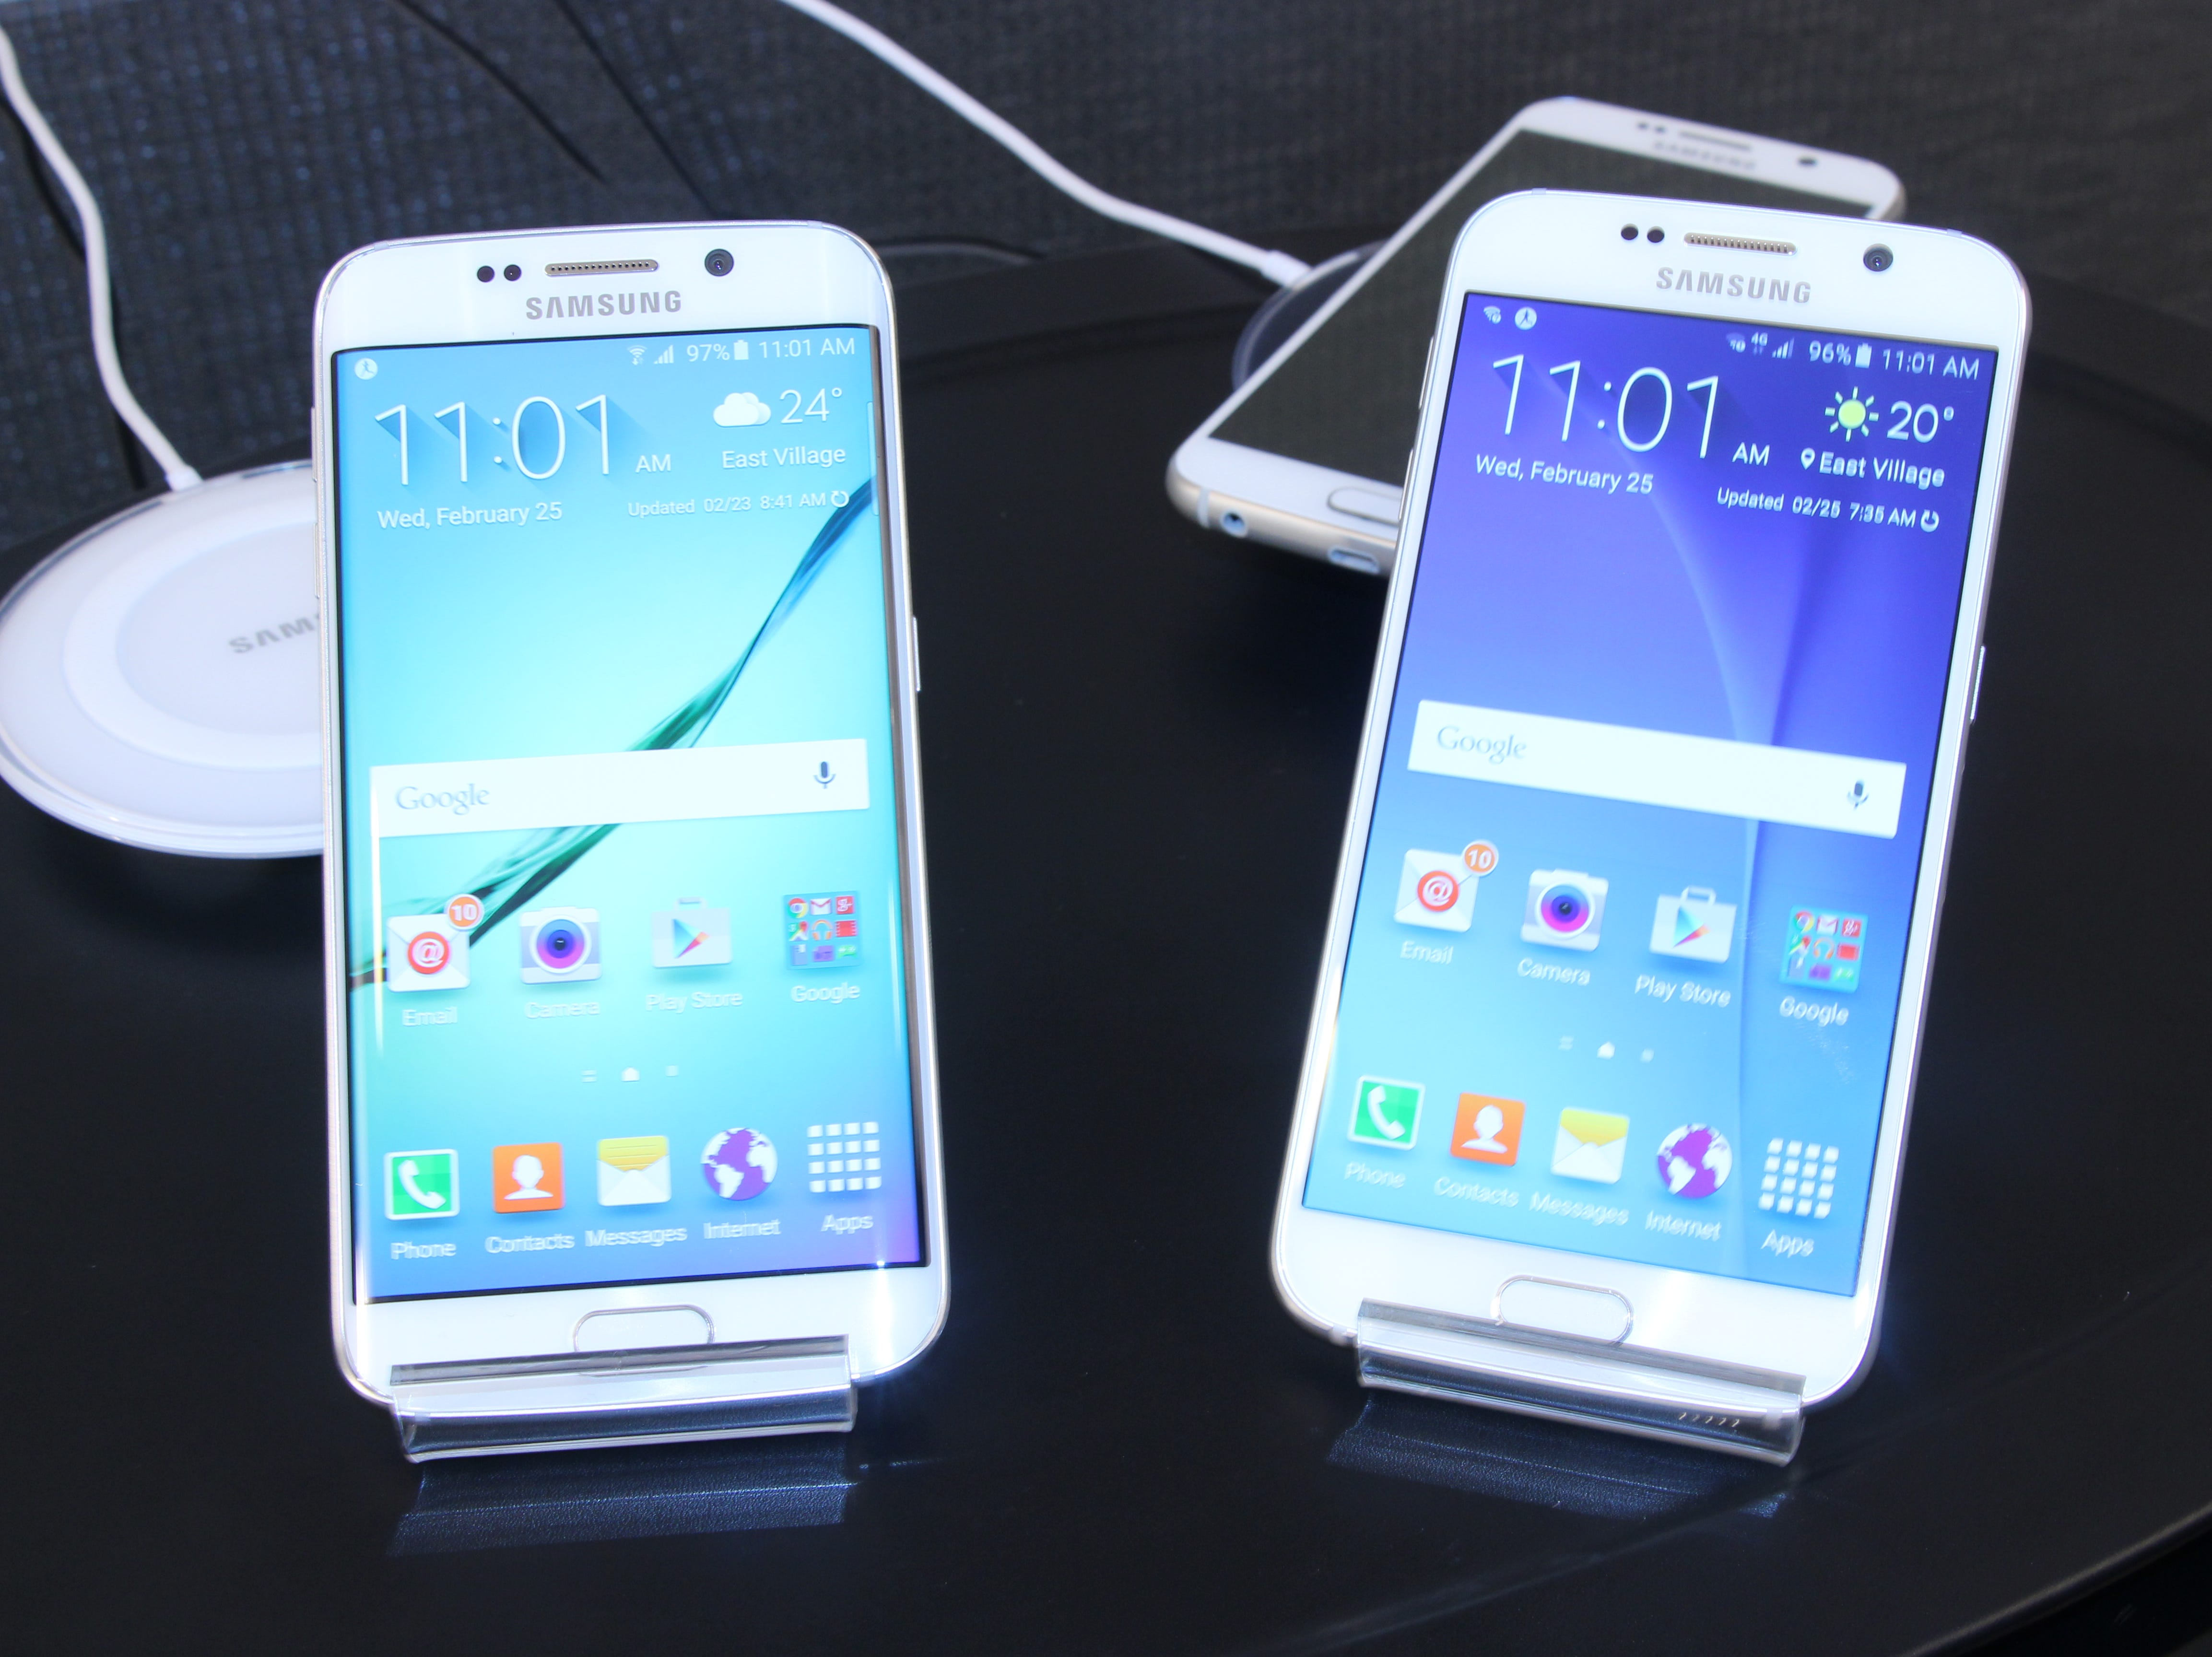 Announced in February 2015, Samsung's Galaxy S6 came in two varieties: a traditional S6, right, and a curved S6 Edge. Switching to a glass design, the phone had a sharper screen and improved camera, but removed features like water resistance and a removable battery.